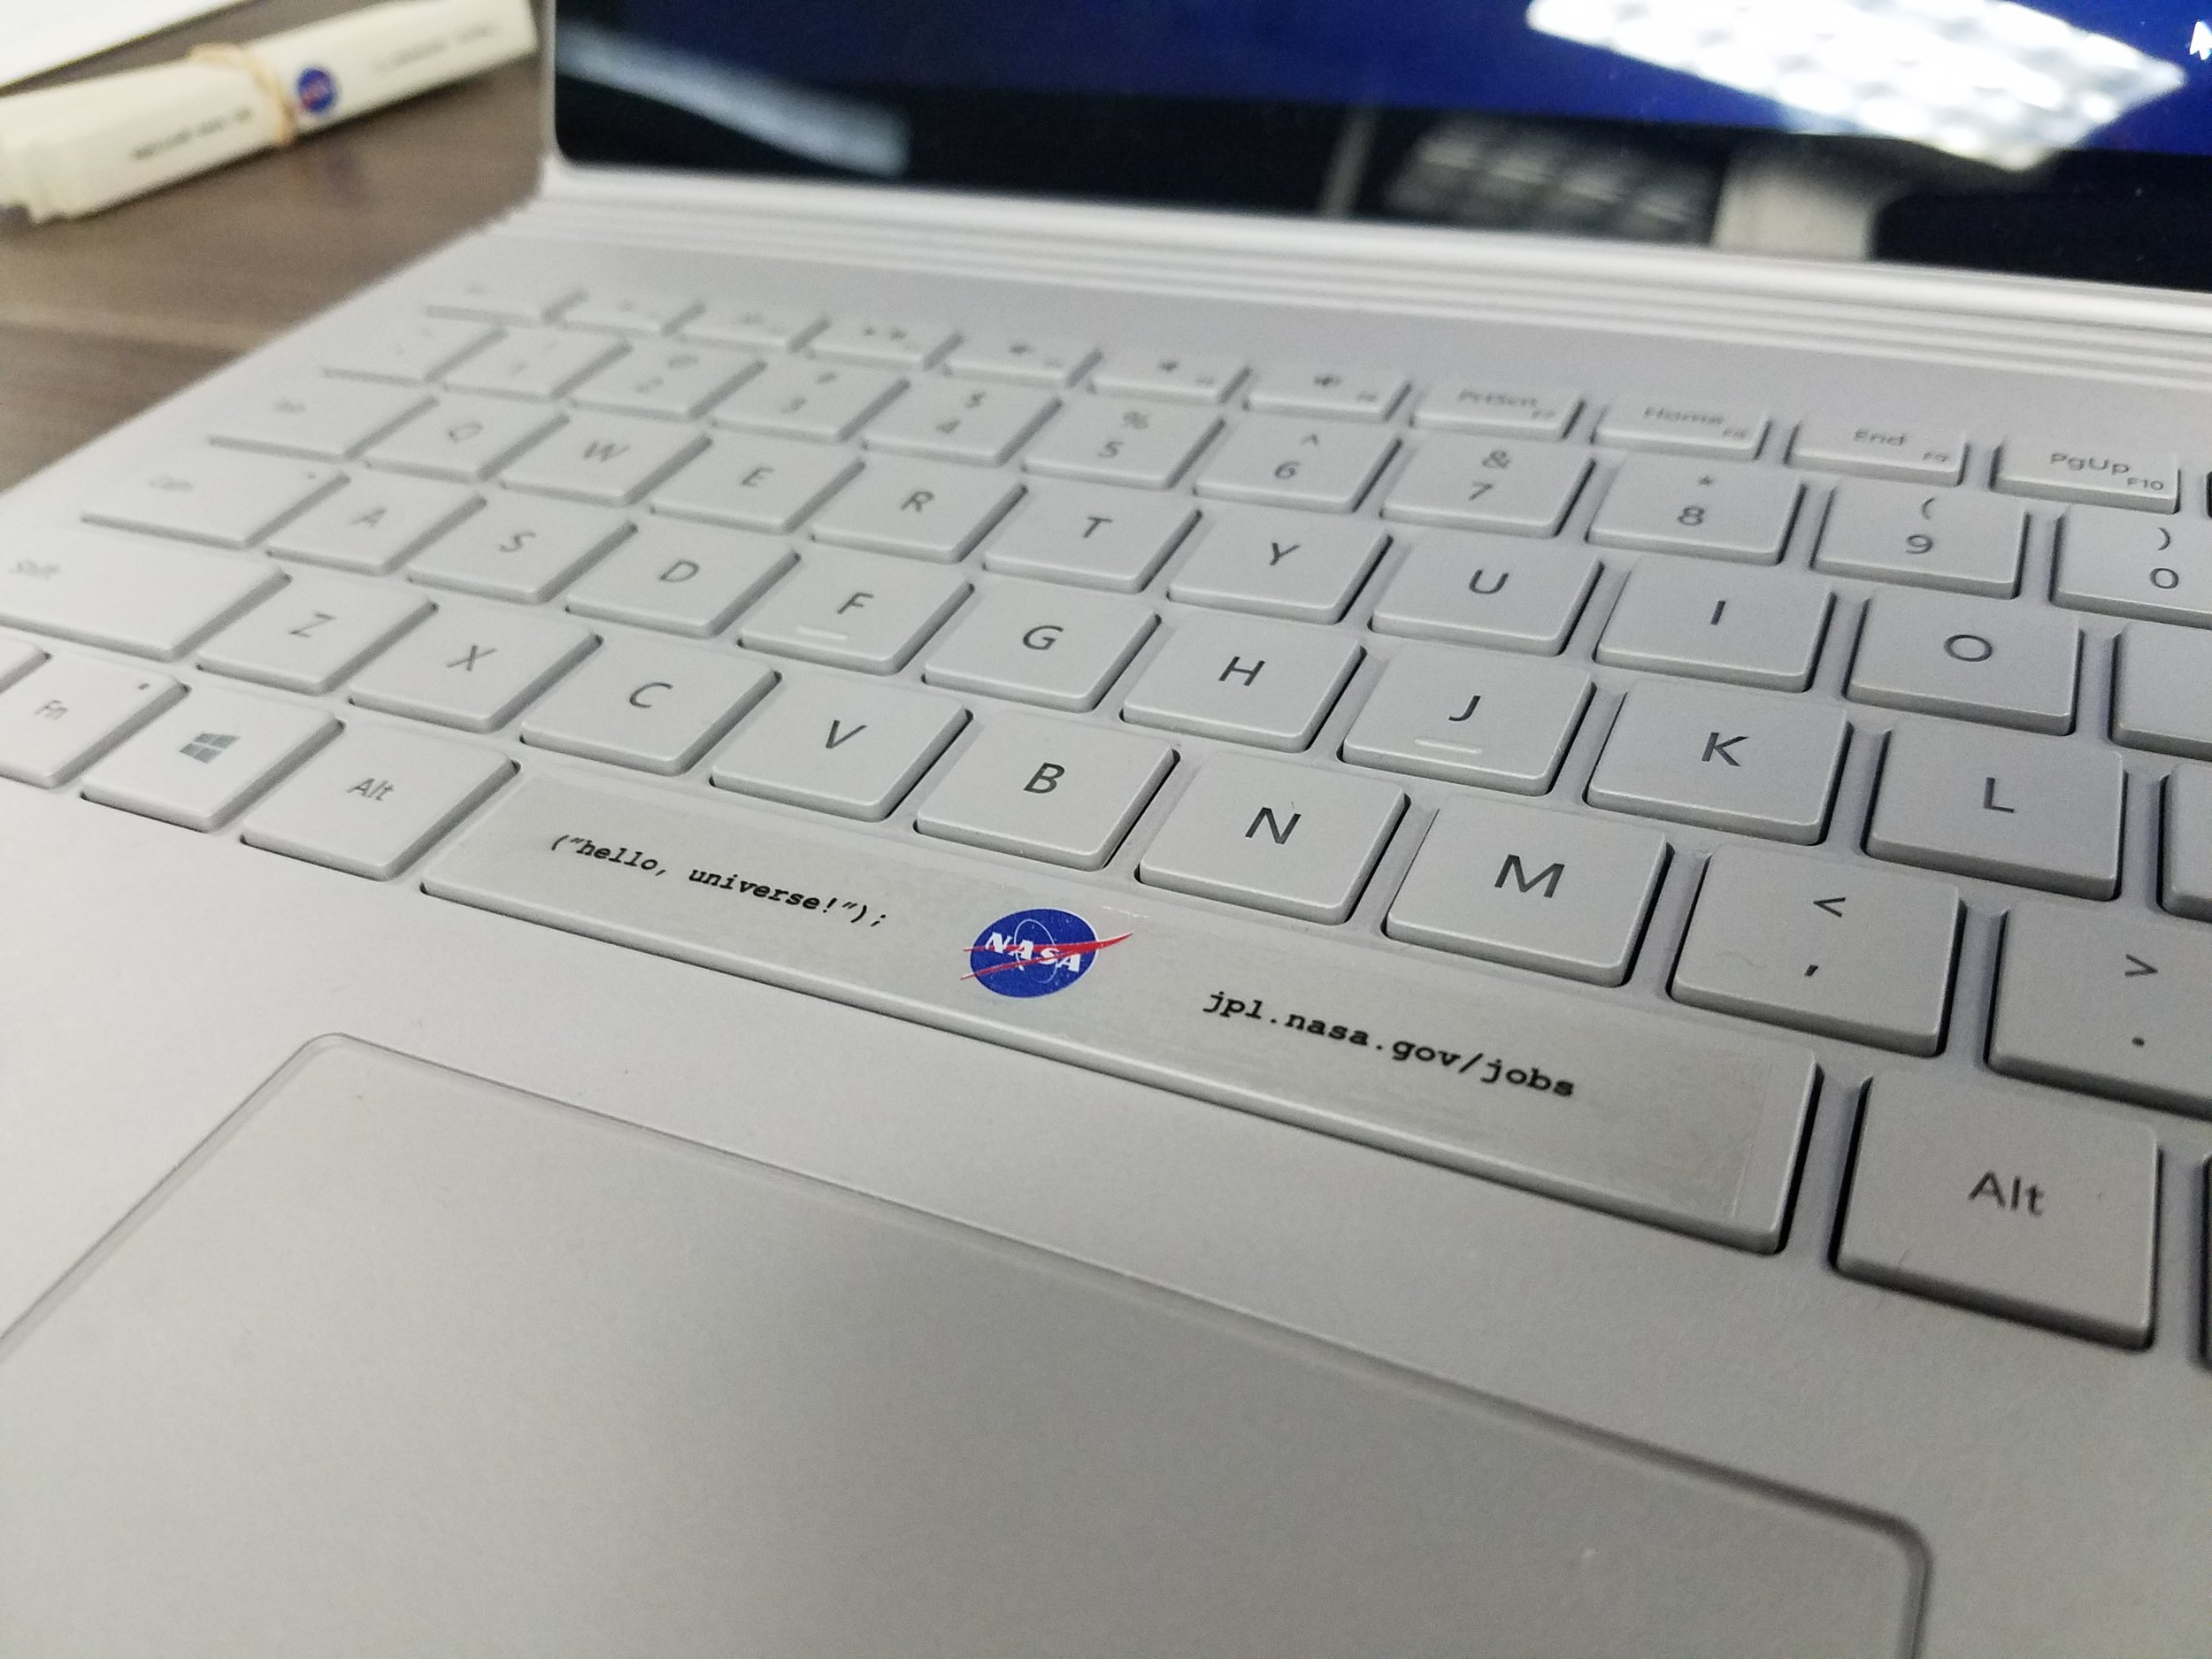 NASA should OWN the space bar.